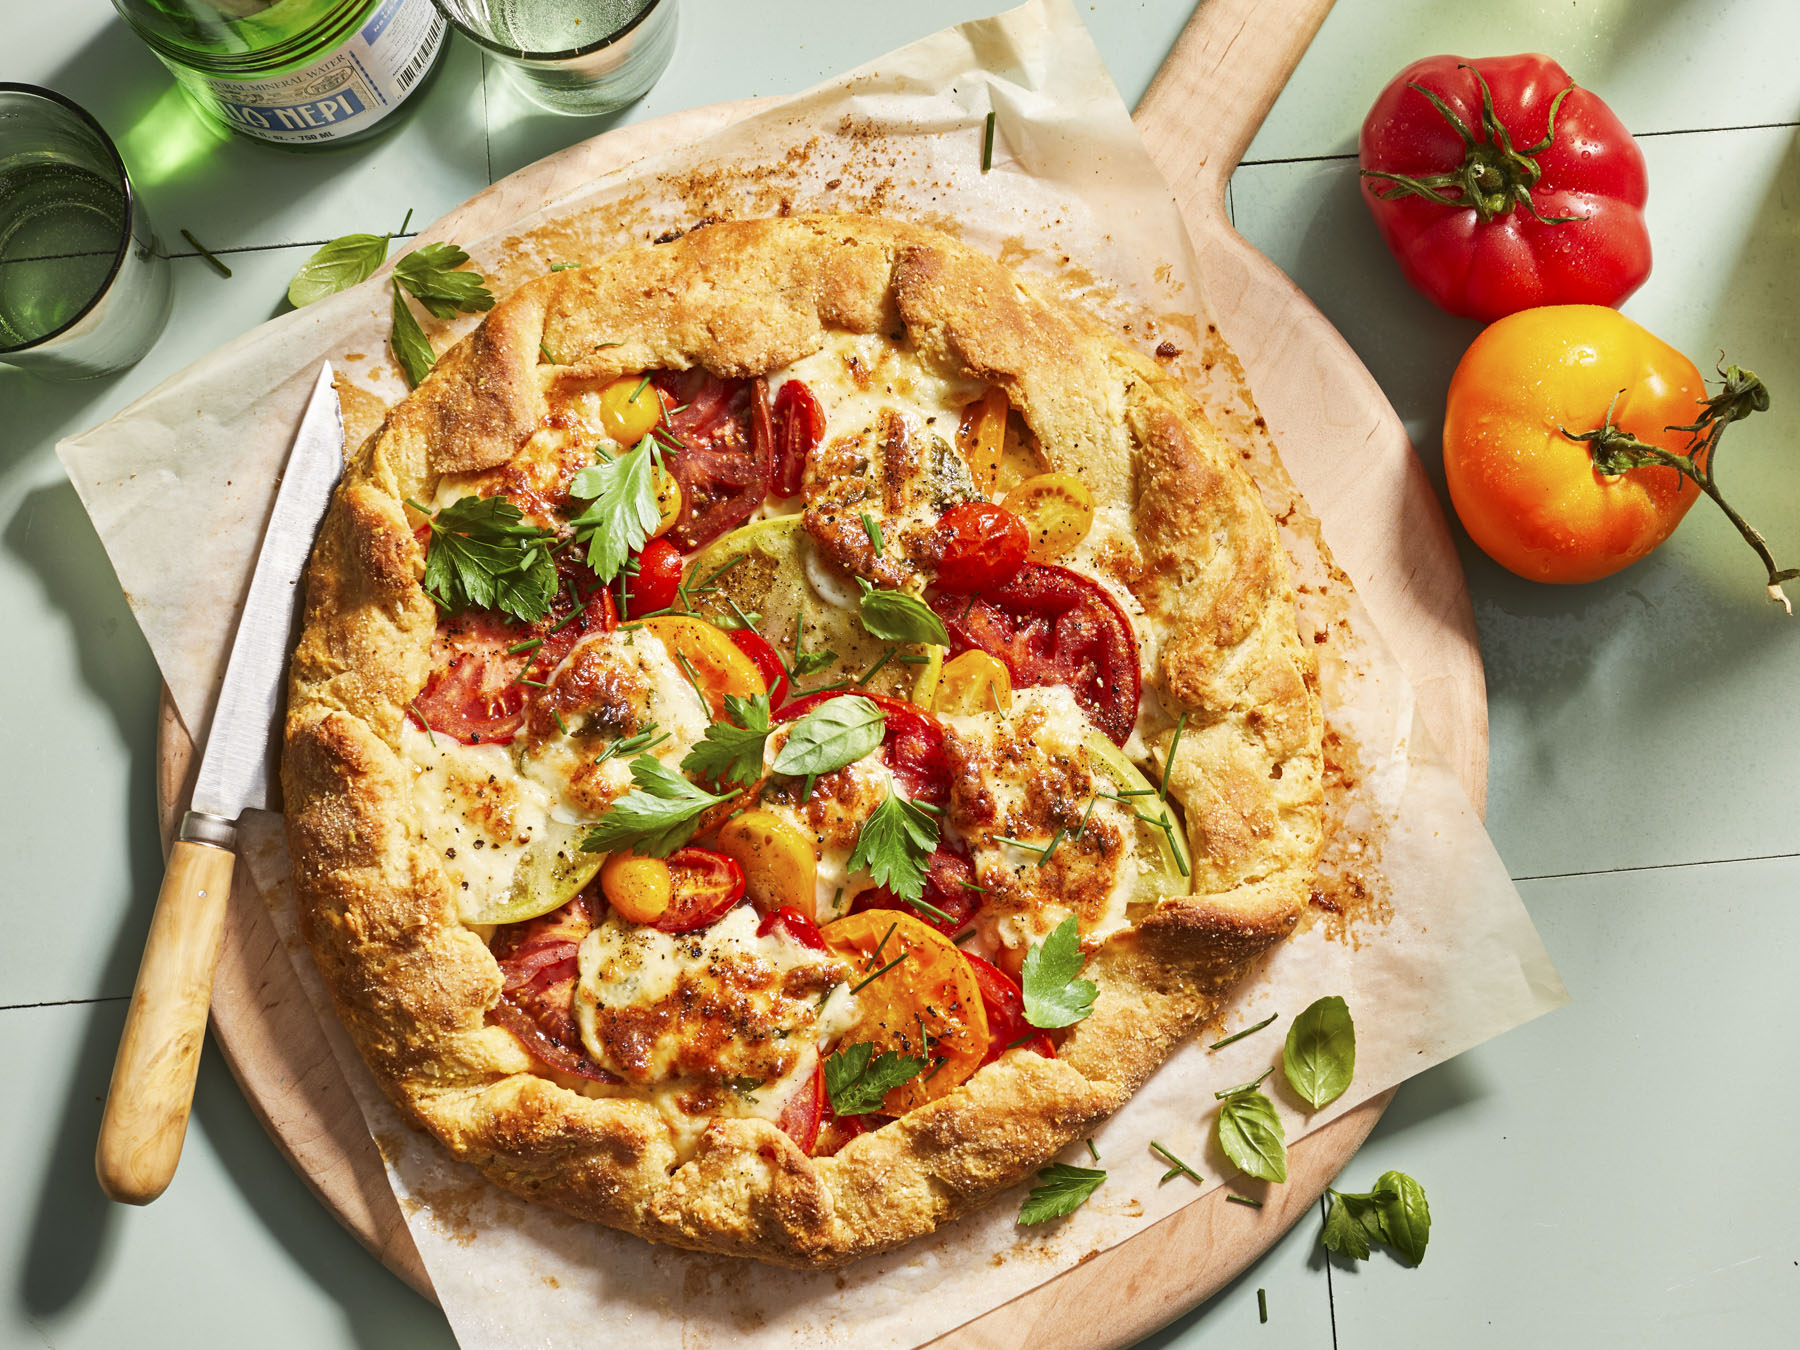 Tomato Tart with Smoked Mozzarella and Dijon